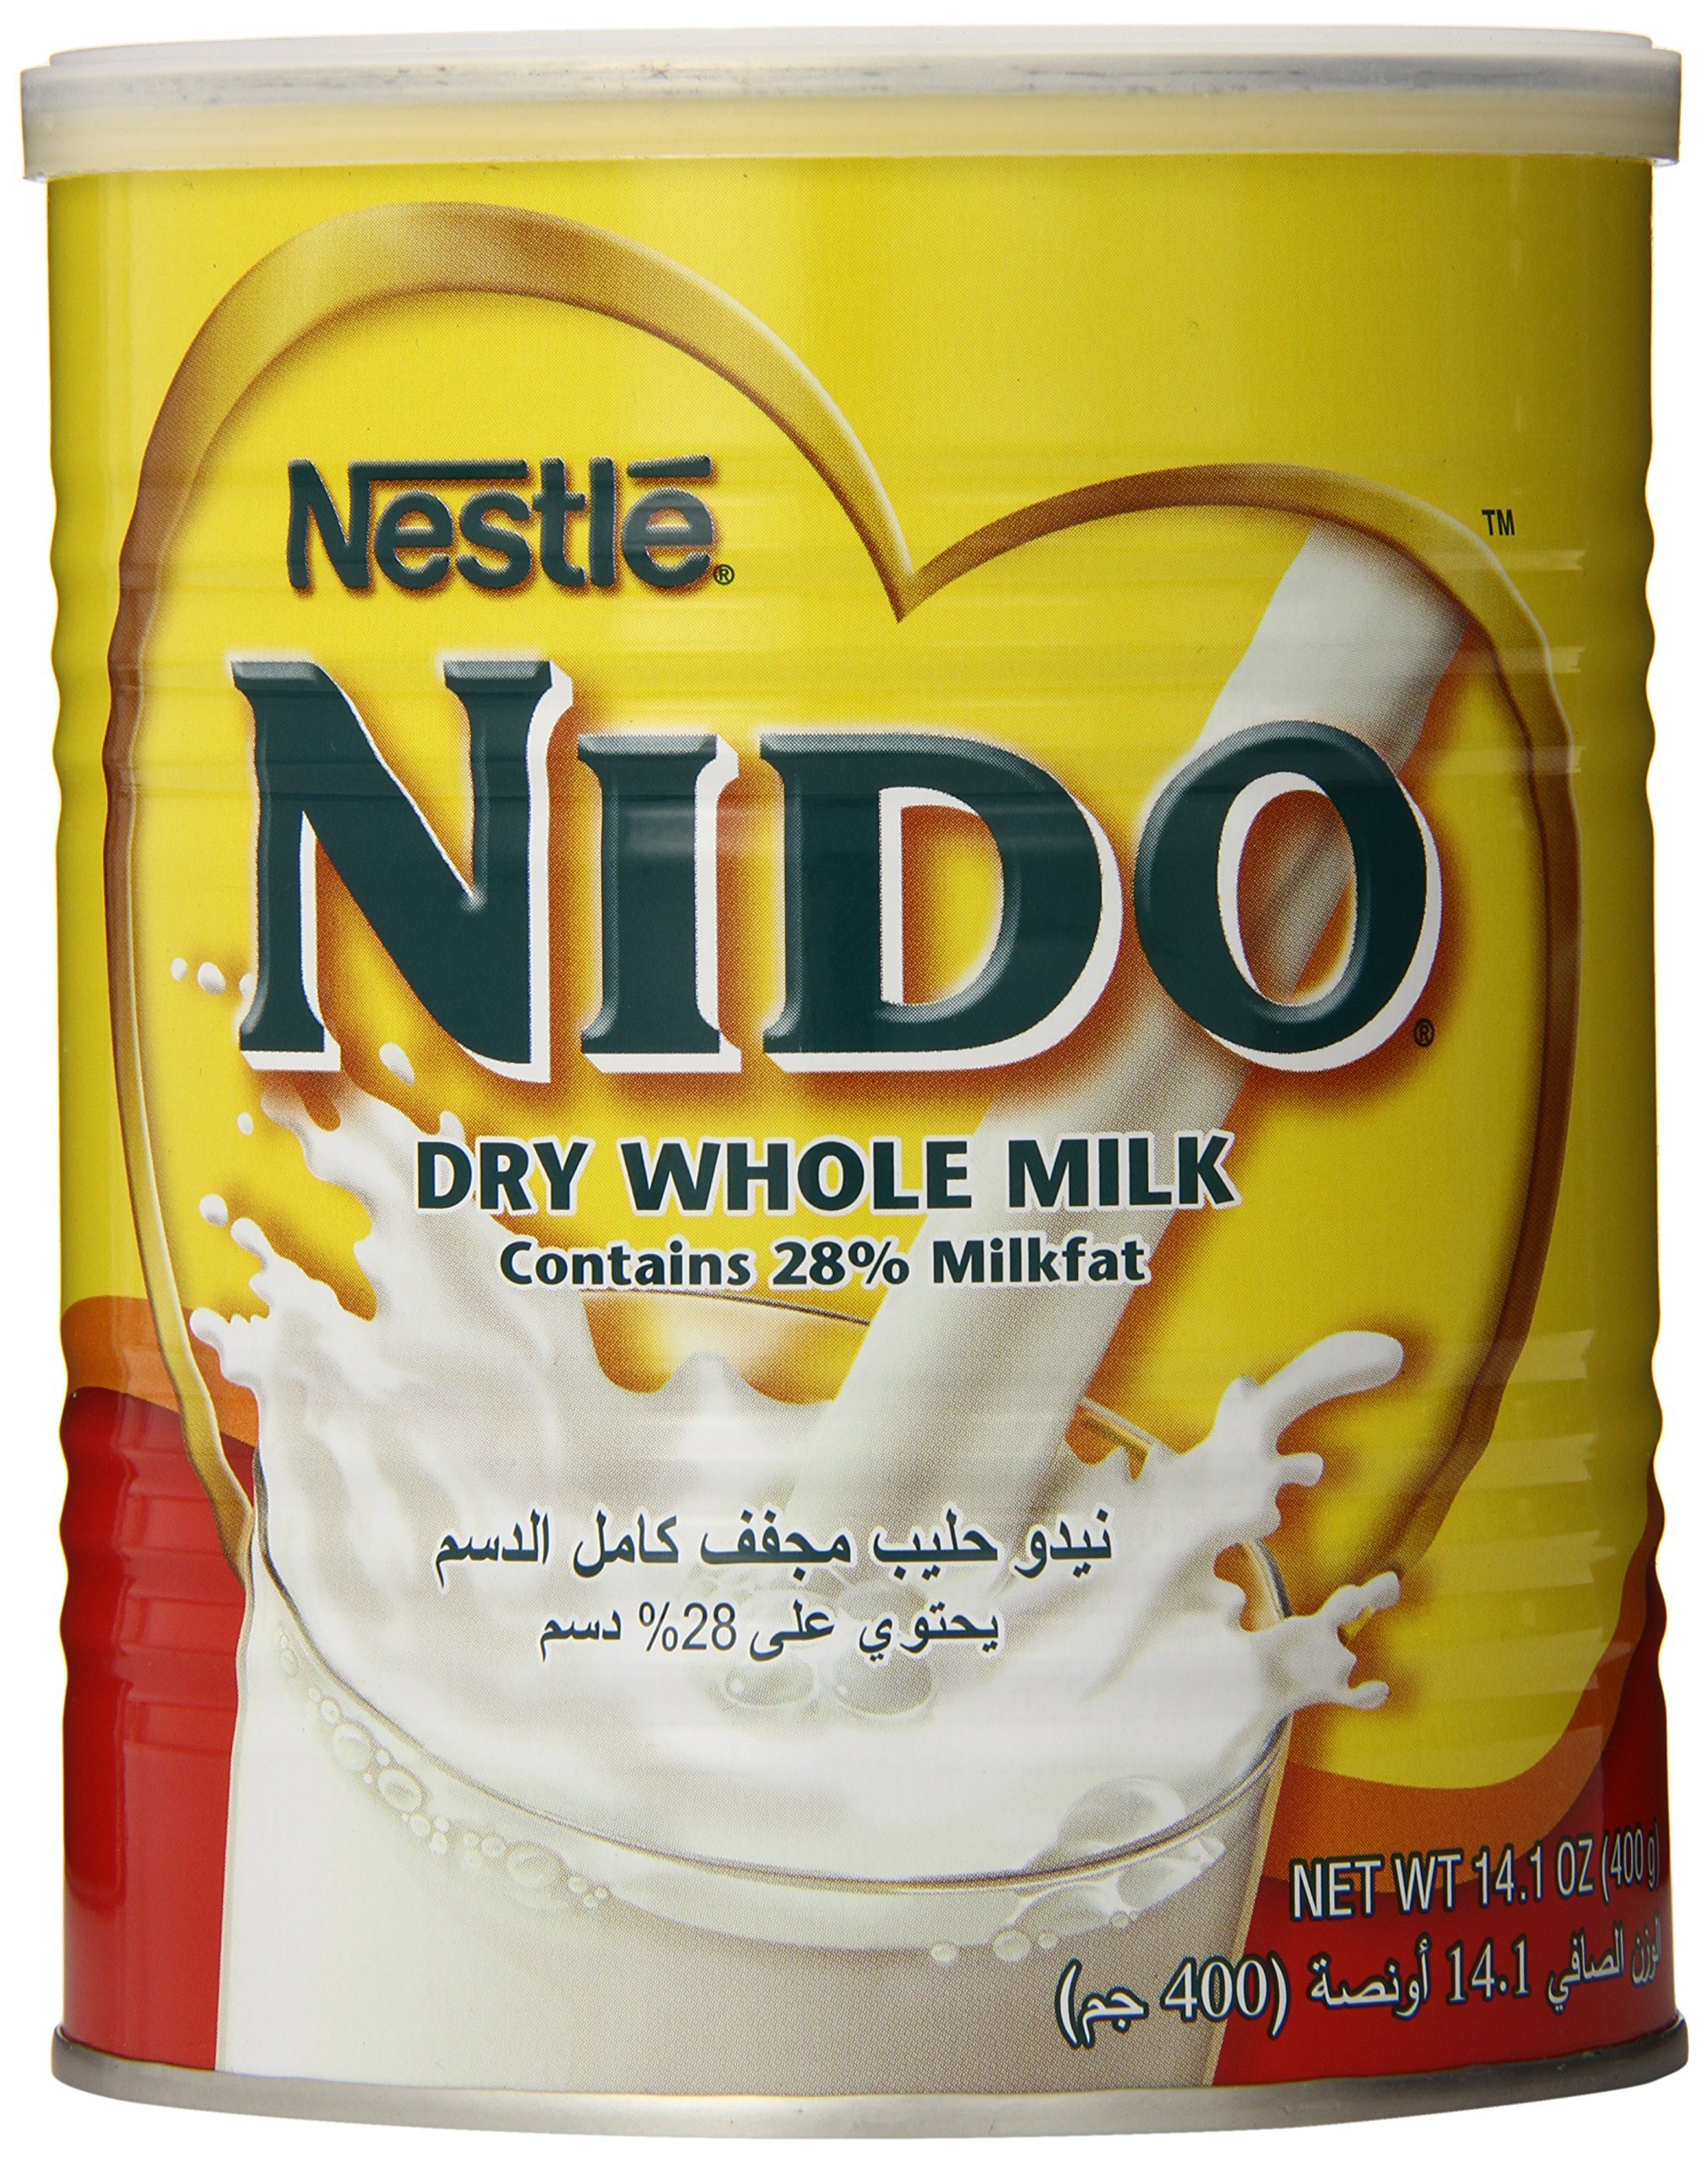 Nestle Nido Milk Powder, Imported, (400 gm), 14.1-Ounce Cans (Pack of 3) by Nido